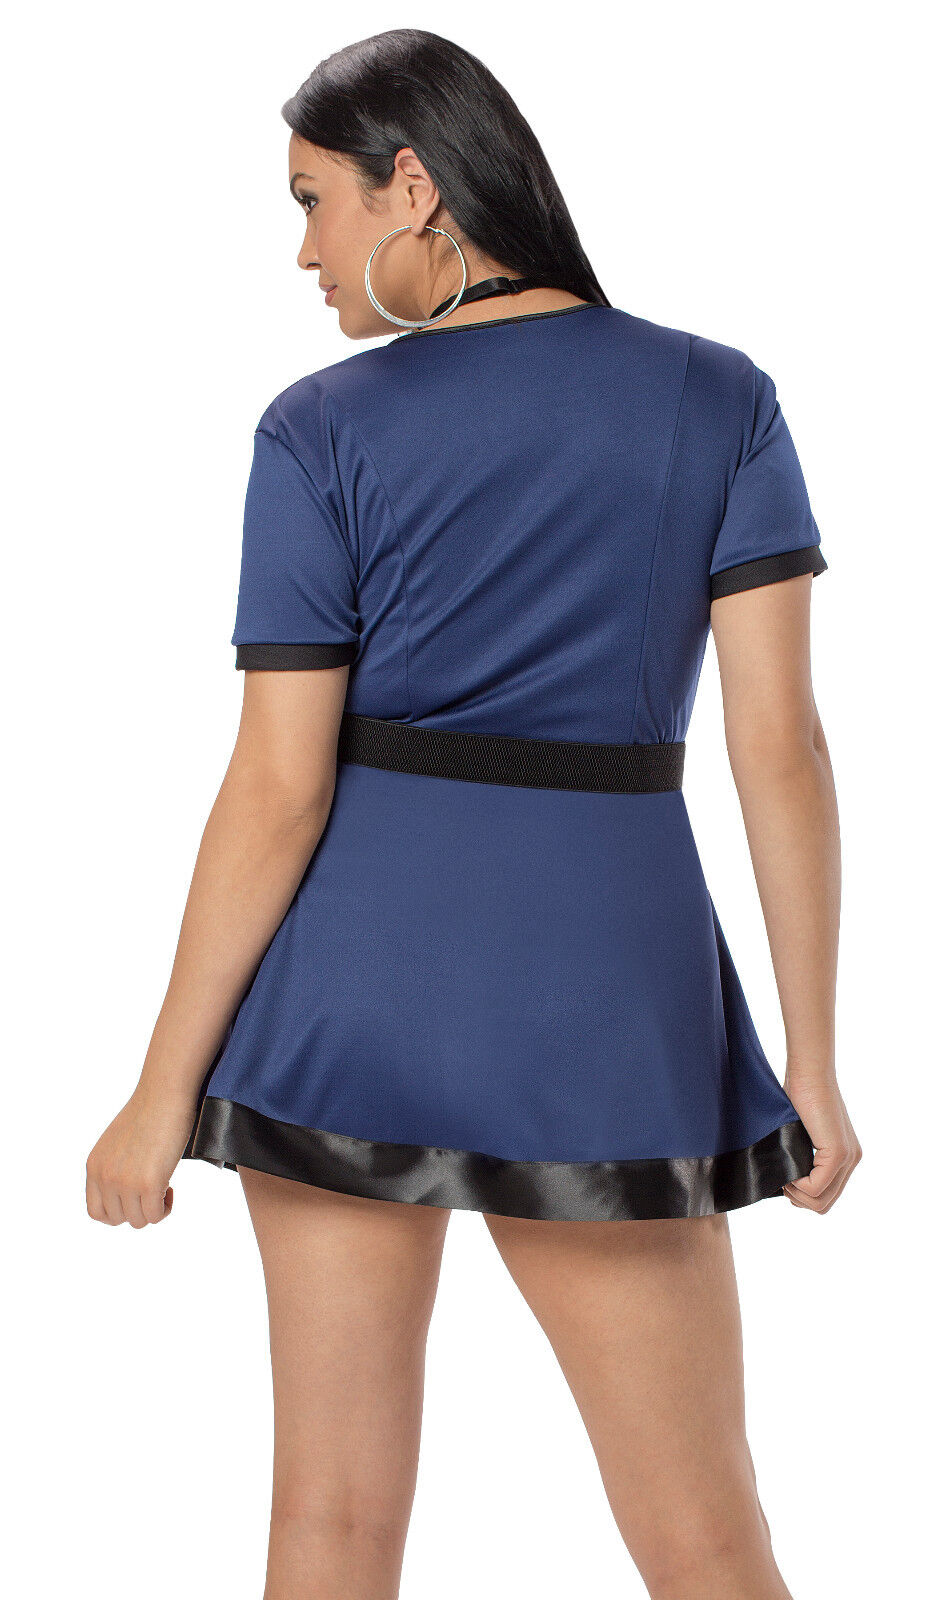 about sexy off duty cop bedroom costume fun roll play plus size too